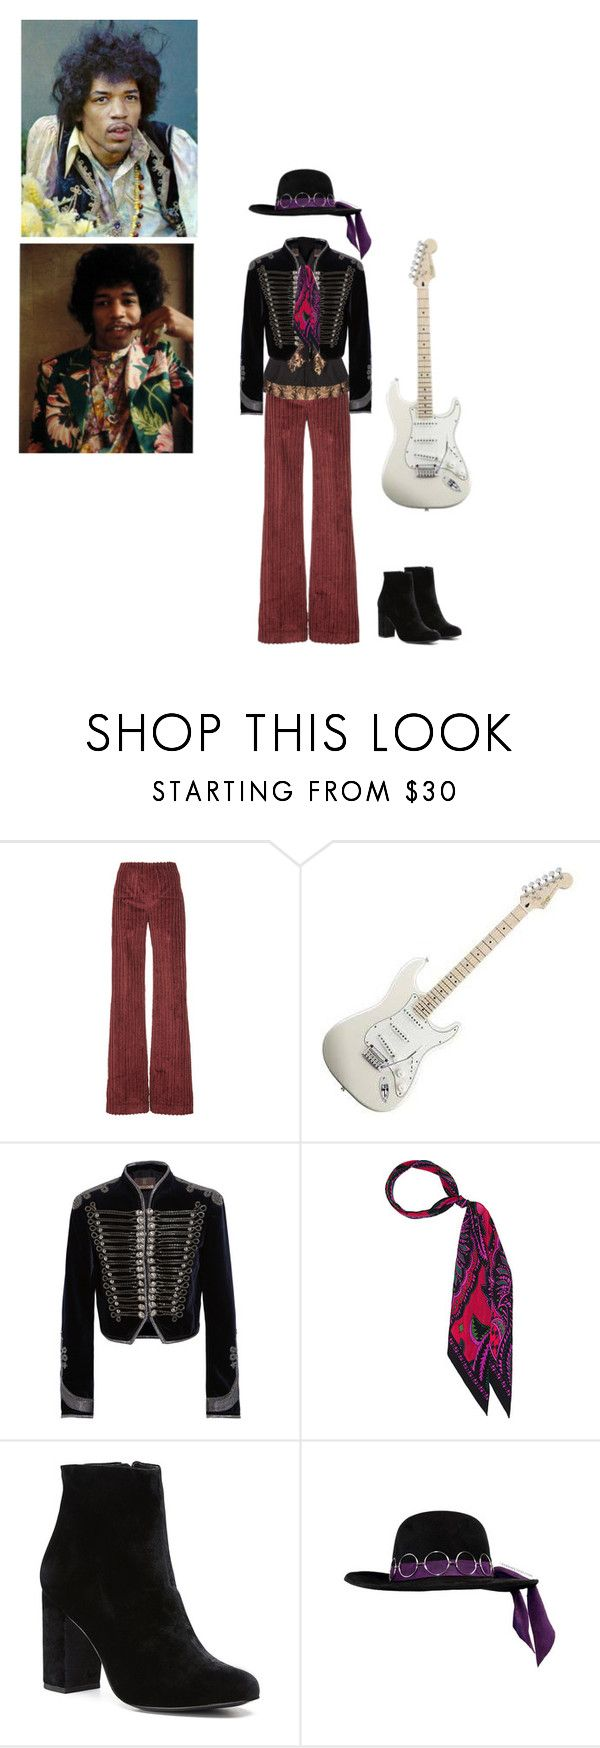 """Jimi Hendrix"" by queenstormrider ❤ liked on Polyvore featuring Isa Arfen, Roberto Cavalli, Witchery, vintage, 70s, JimiHendrix and rockerstyle"